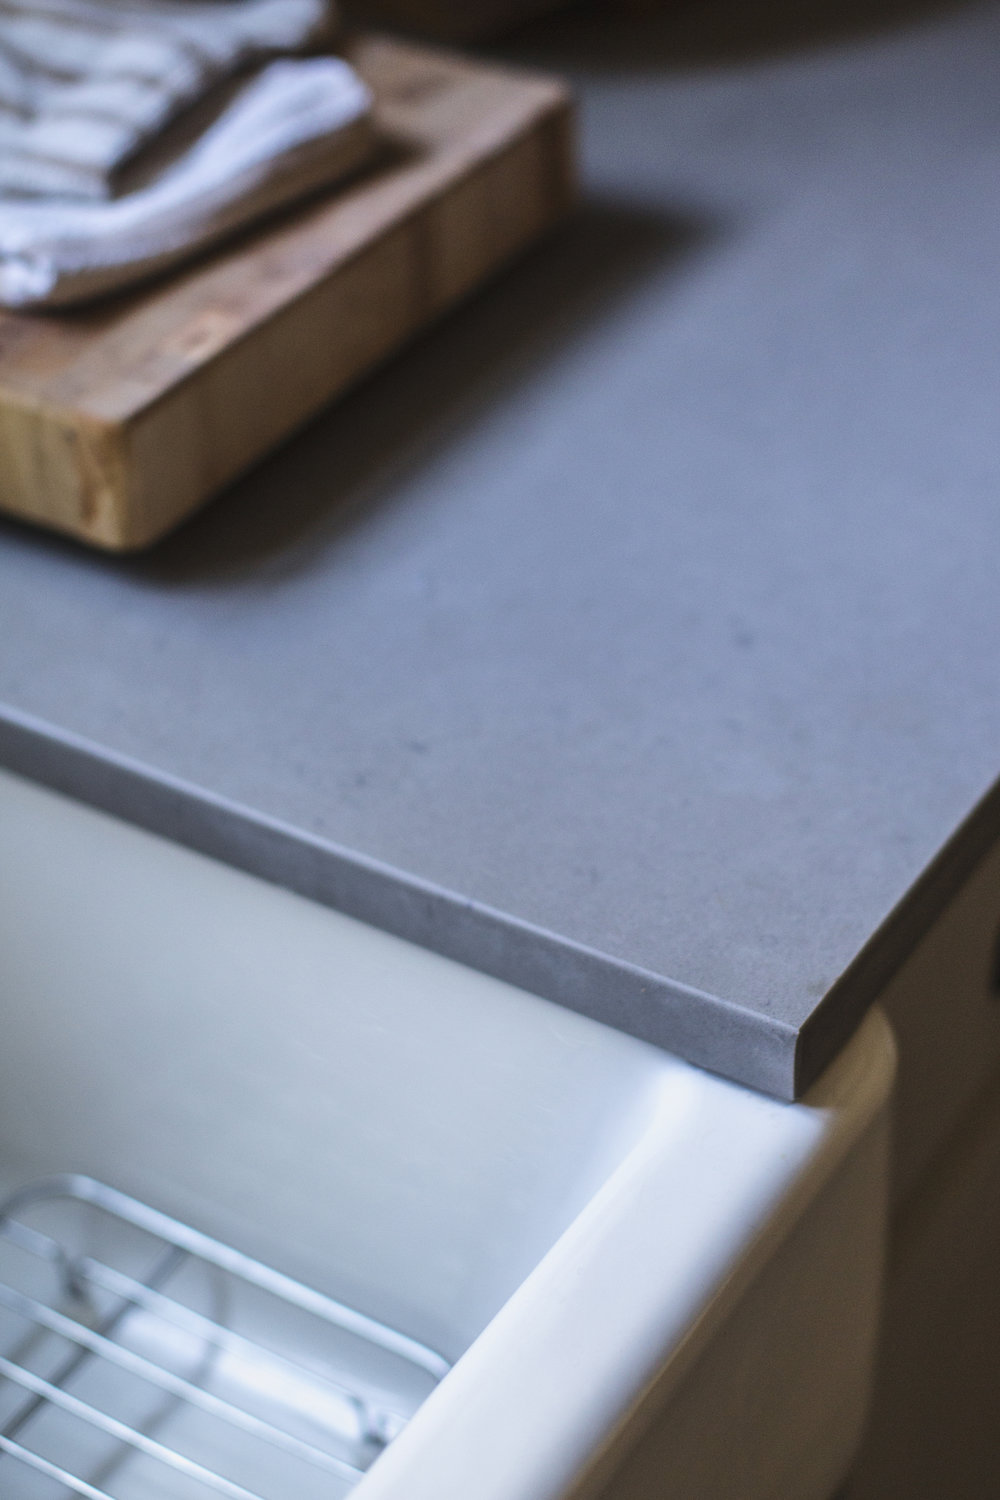 caesarstone quartz countertop in honed pebble / heirloomed